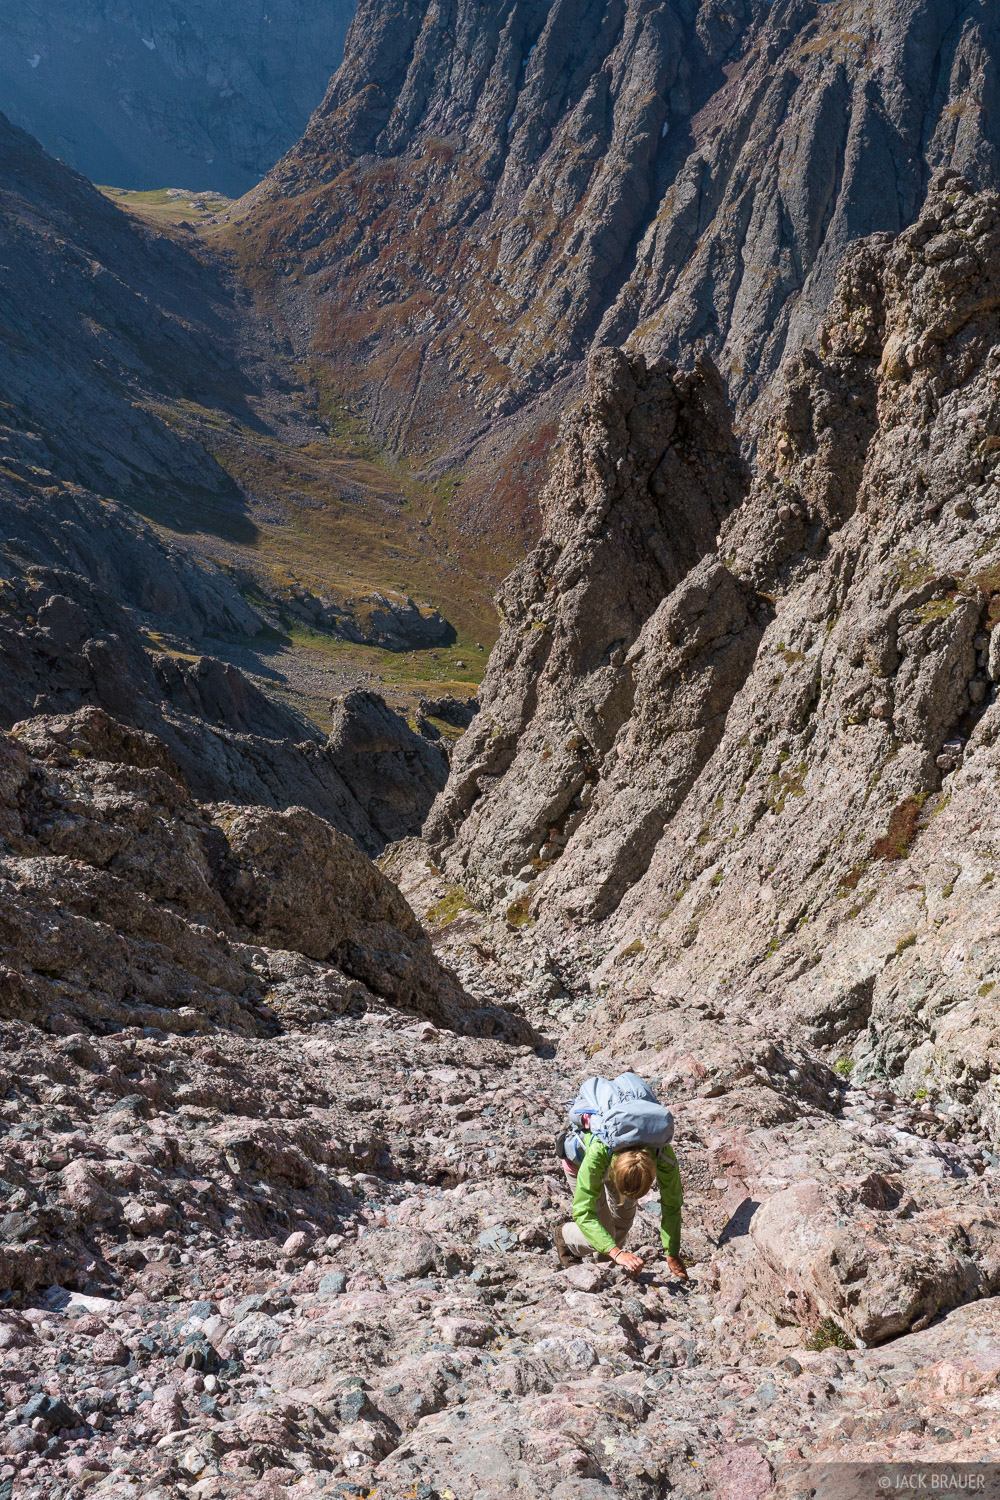 Colorado, Crestone Needle, Sangre de Cristos, 14er, hiking, climbing, Sangre de Cristo Wilderness, photo